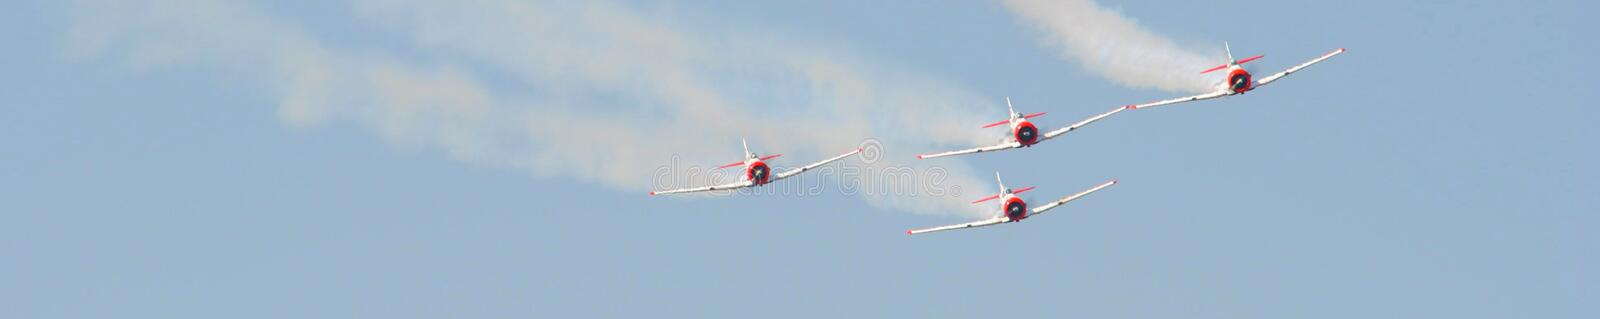 Air show. Aerobatics team at the Swartkop air show in Pretoria, South Africa royalty free stock image